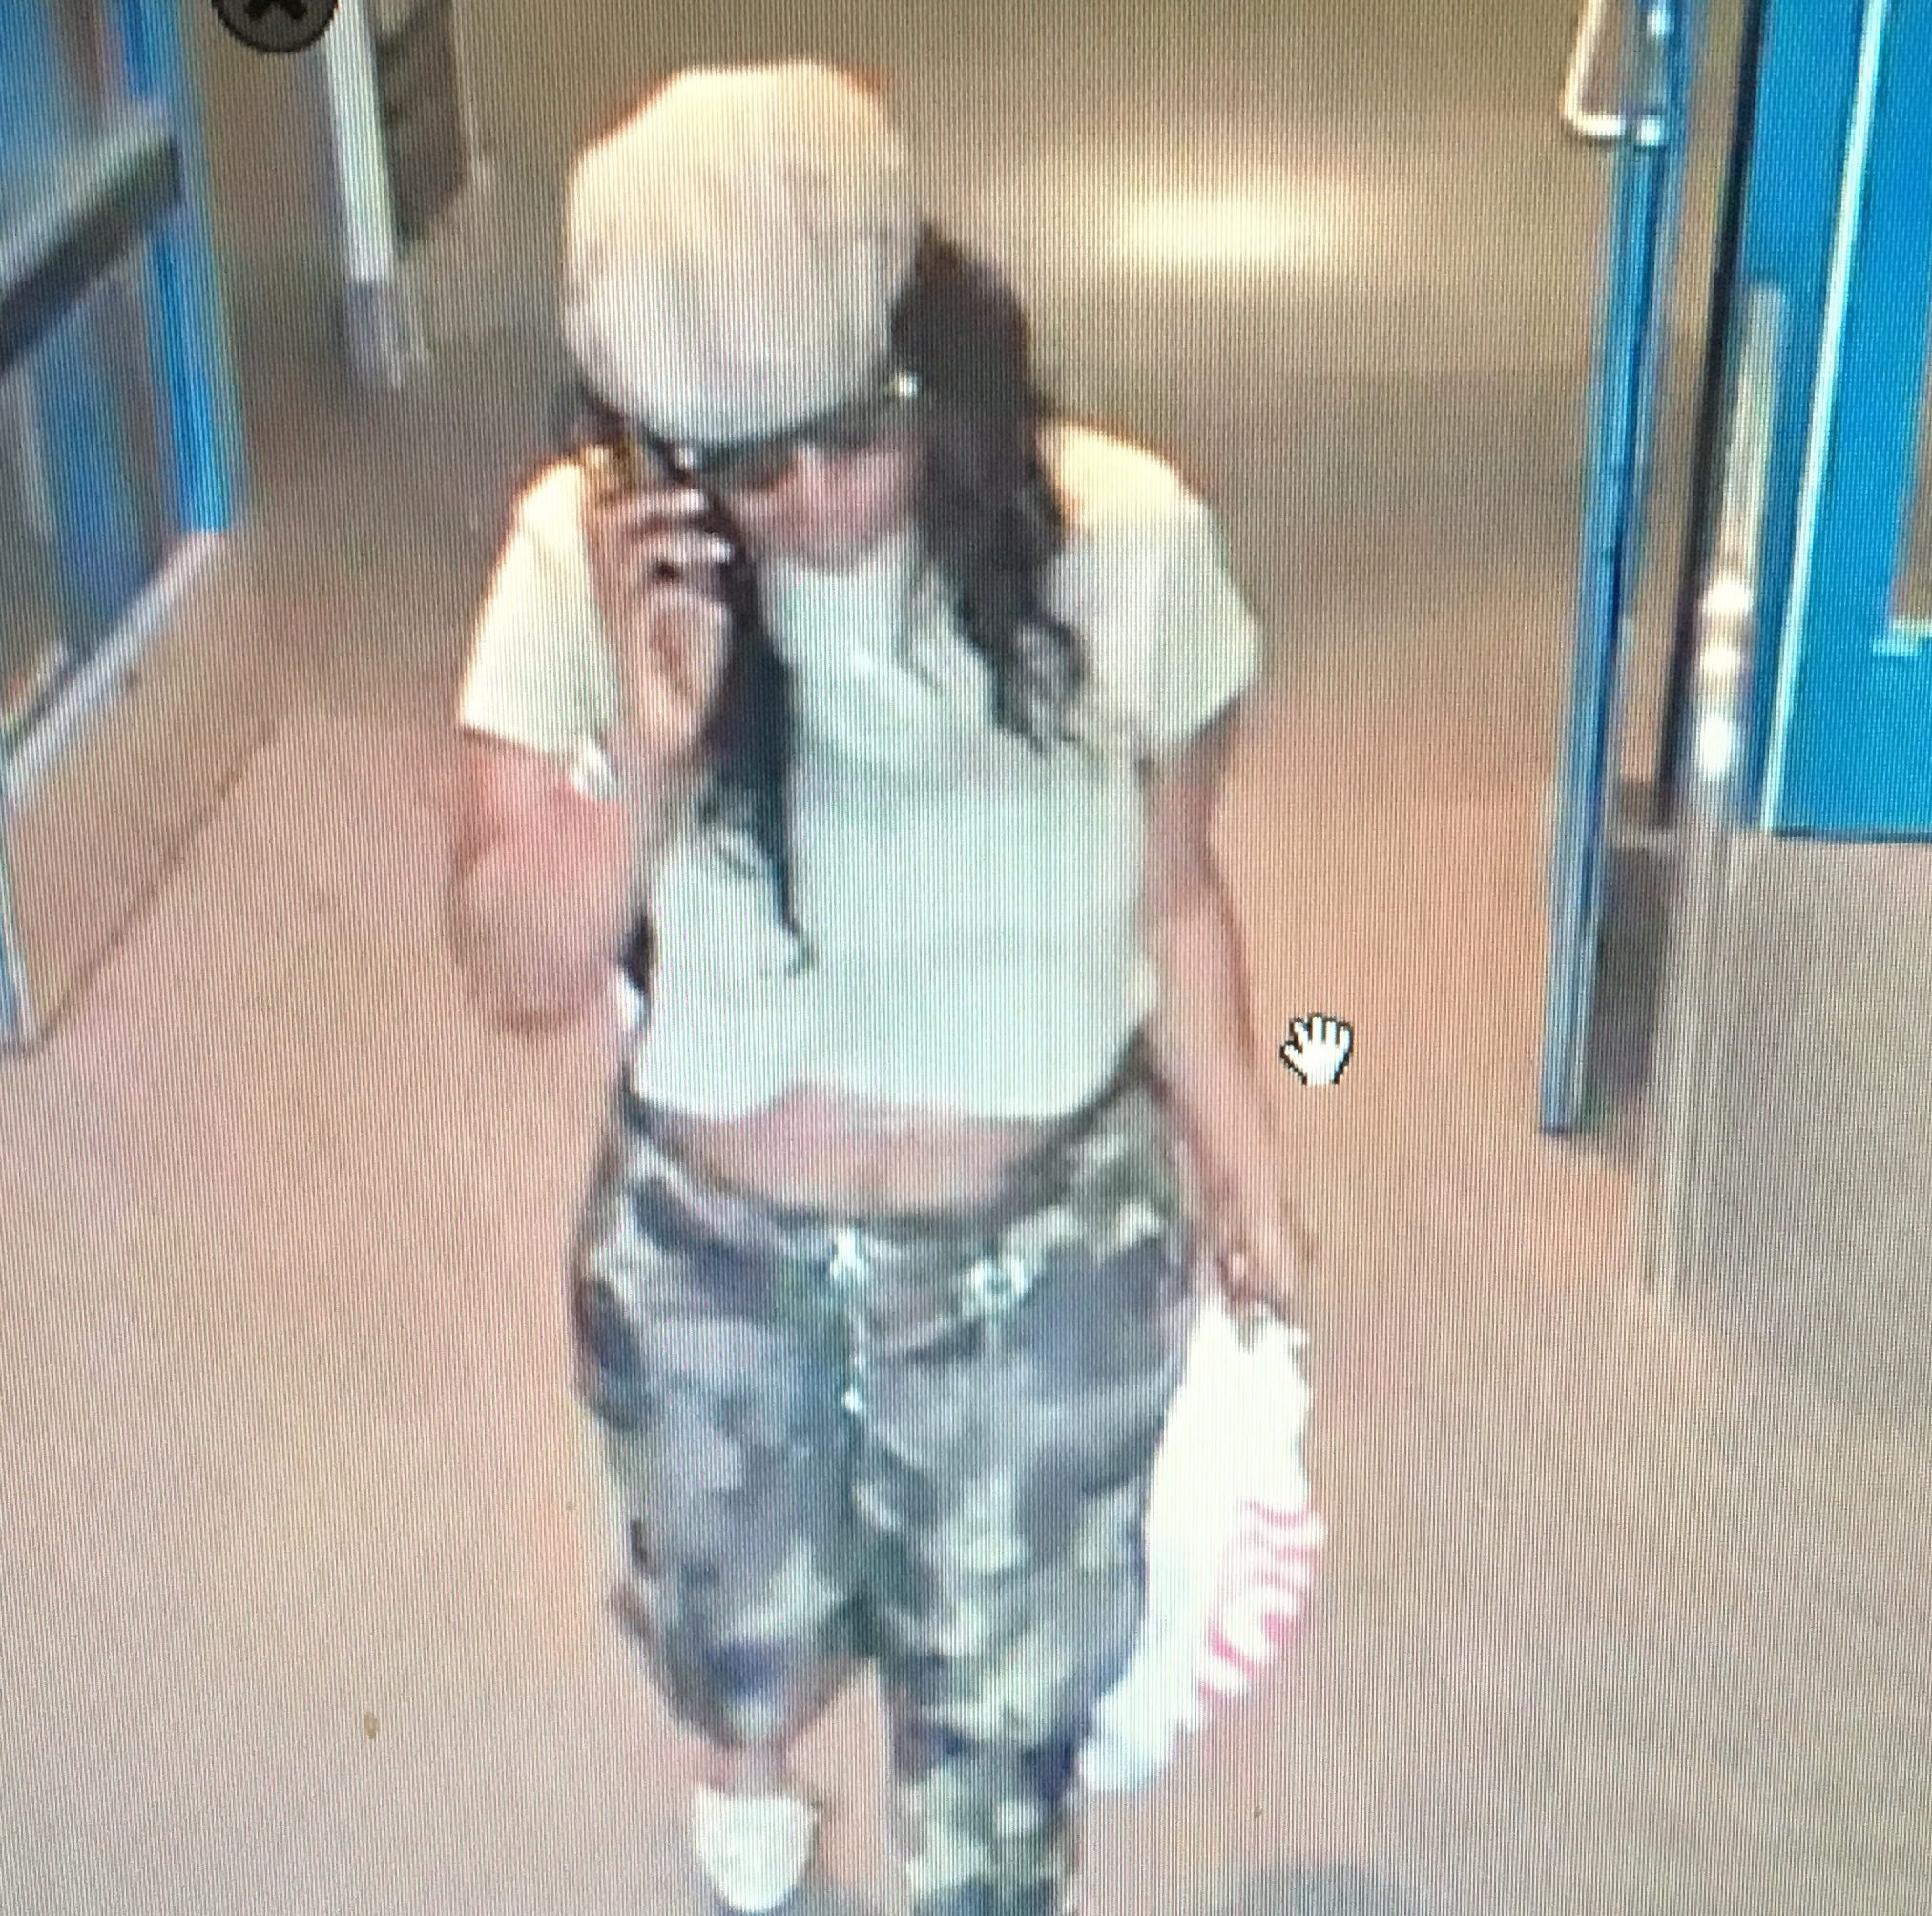 Police: Thieves prey on unsuspecting women, lifting wallets from purses